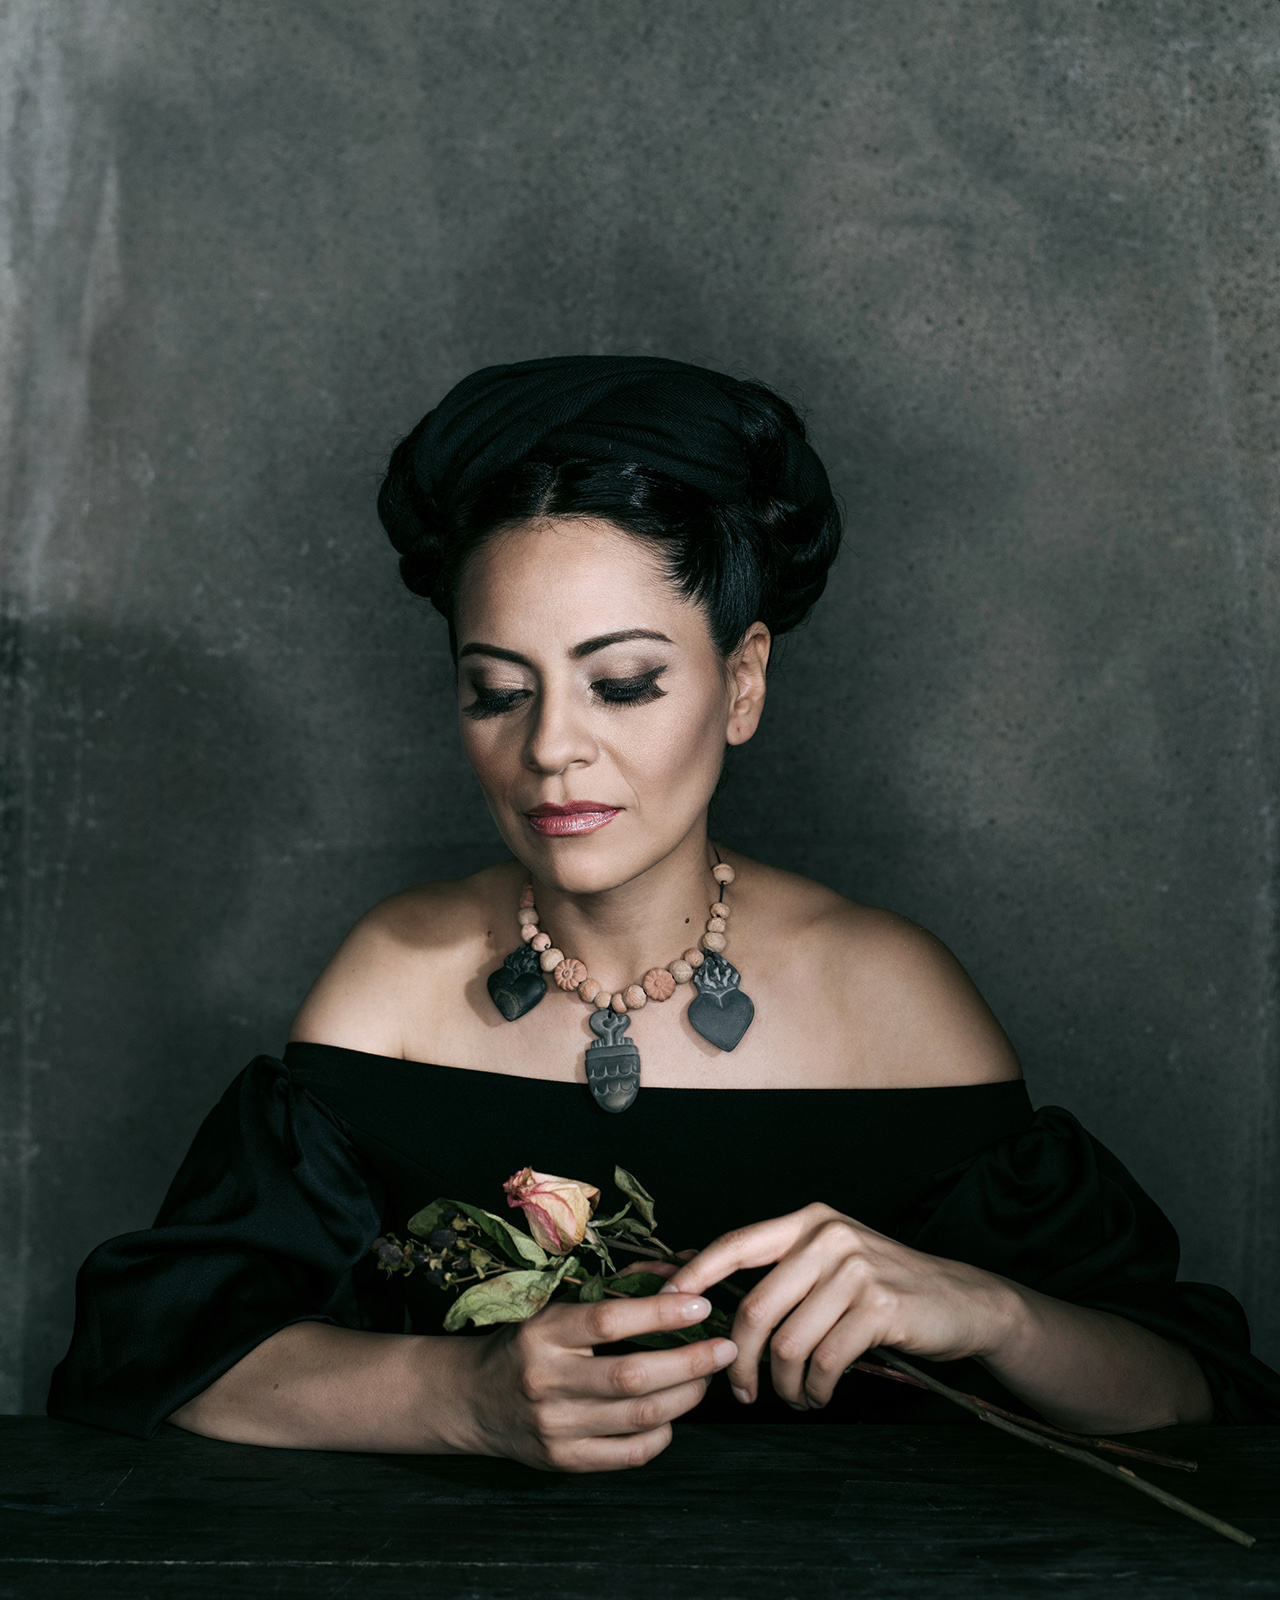 Azul Barrientos, san antonio musician, photographed by advertising photographer Josh Huskin.